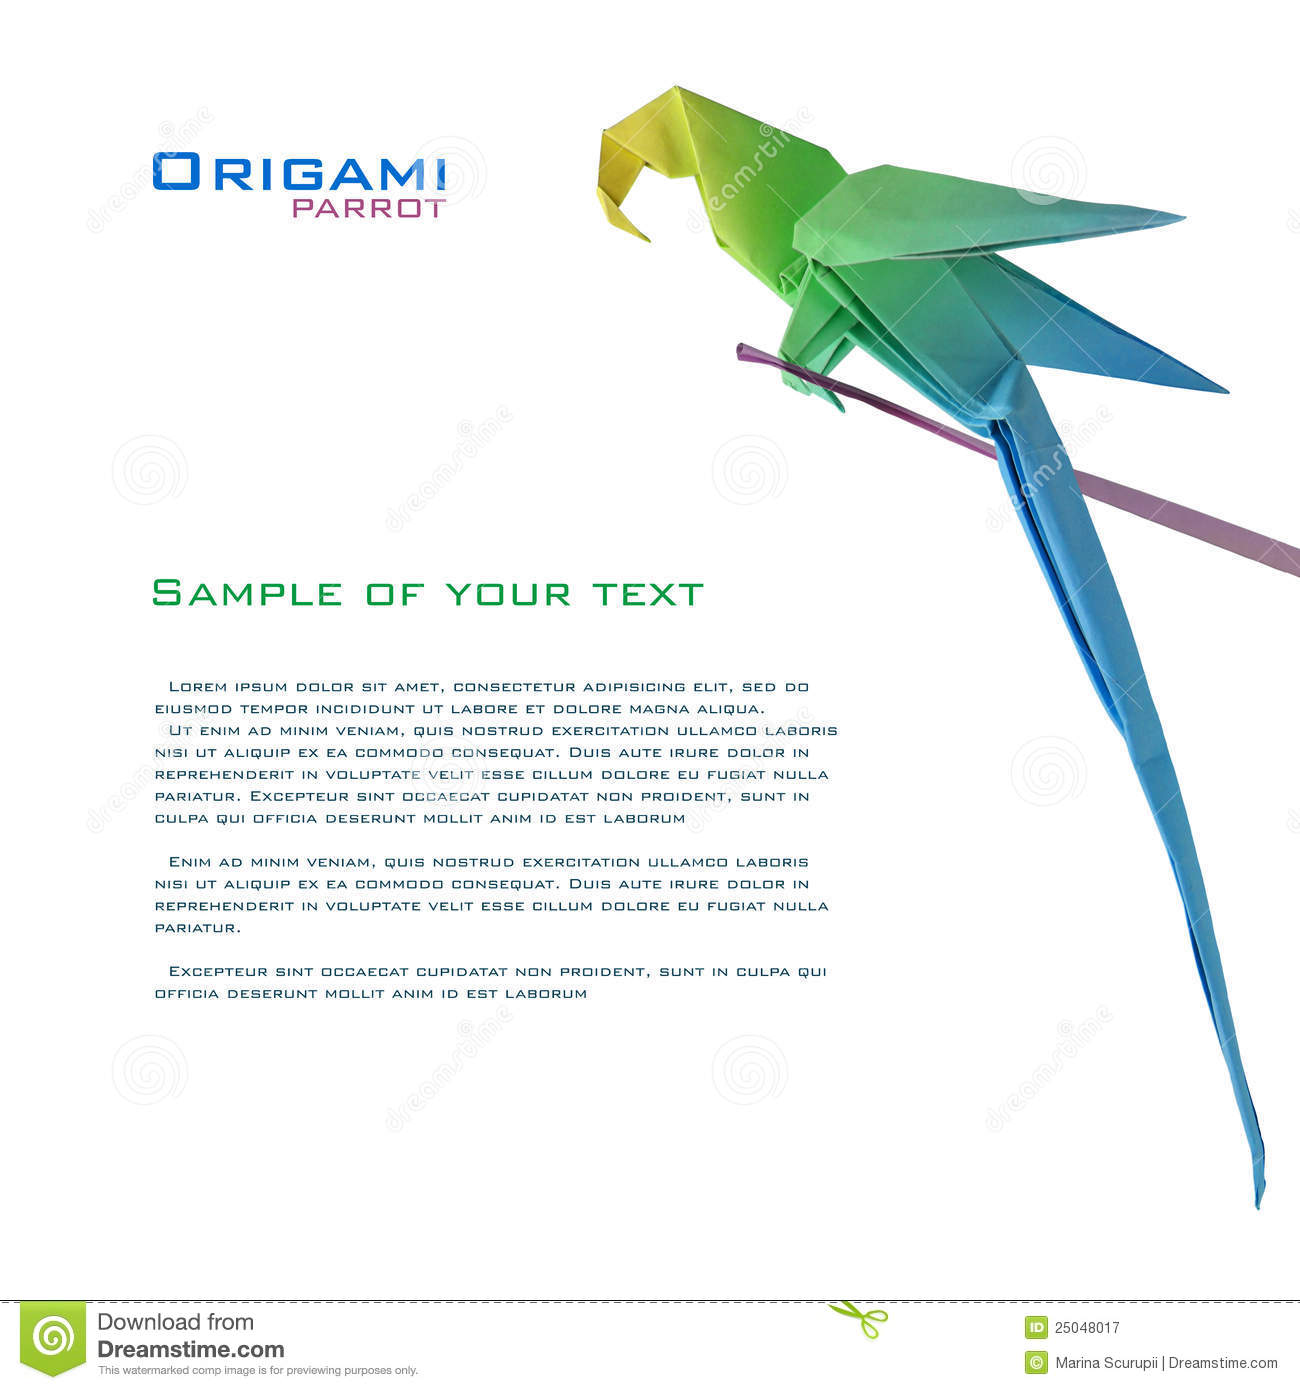 Origami Parrot On A Branch Stock Image Of Paints 25048017 Cute Mouse Diagram